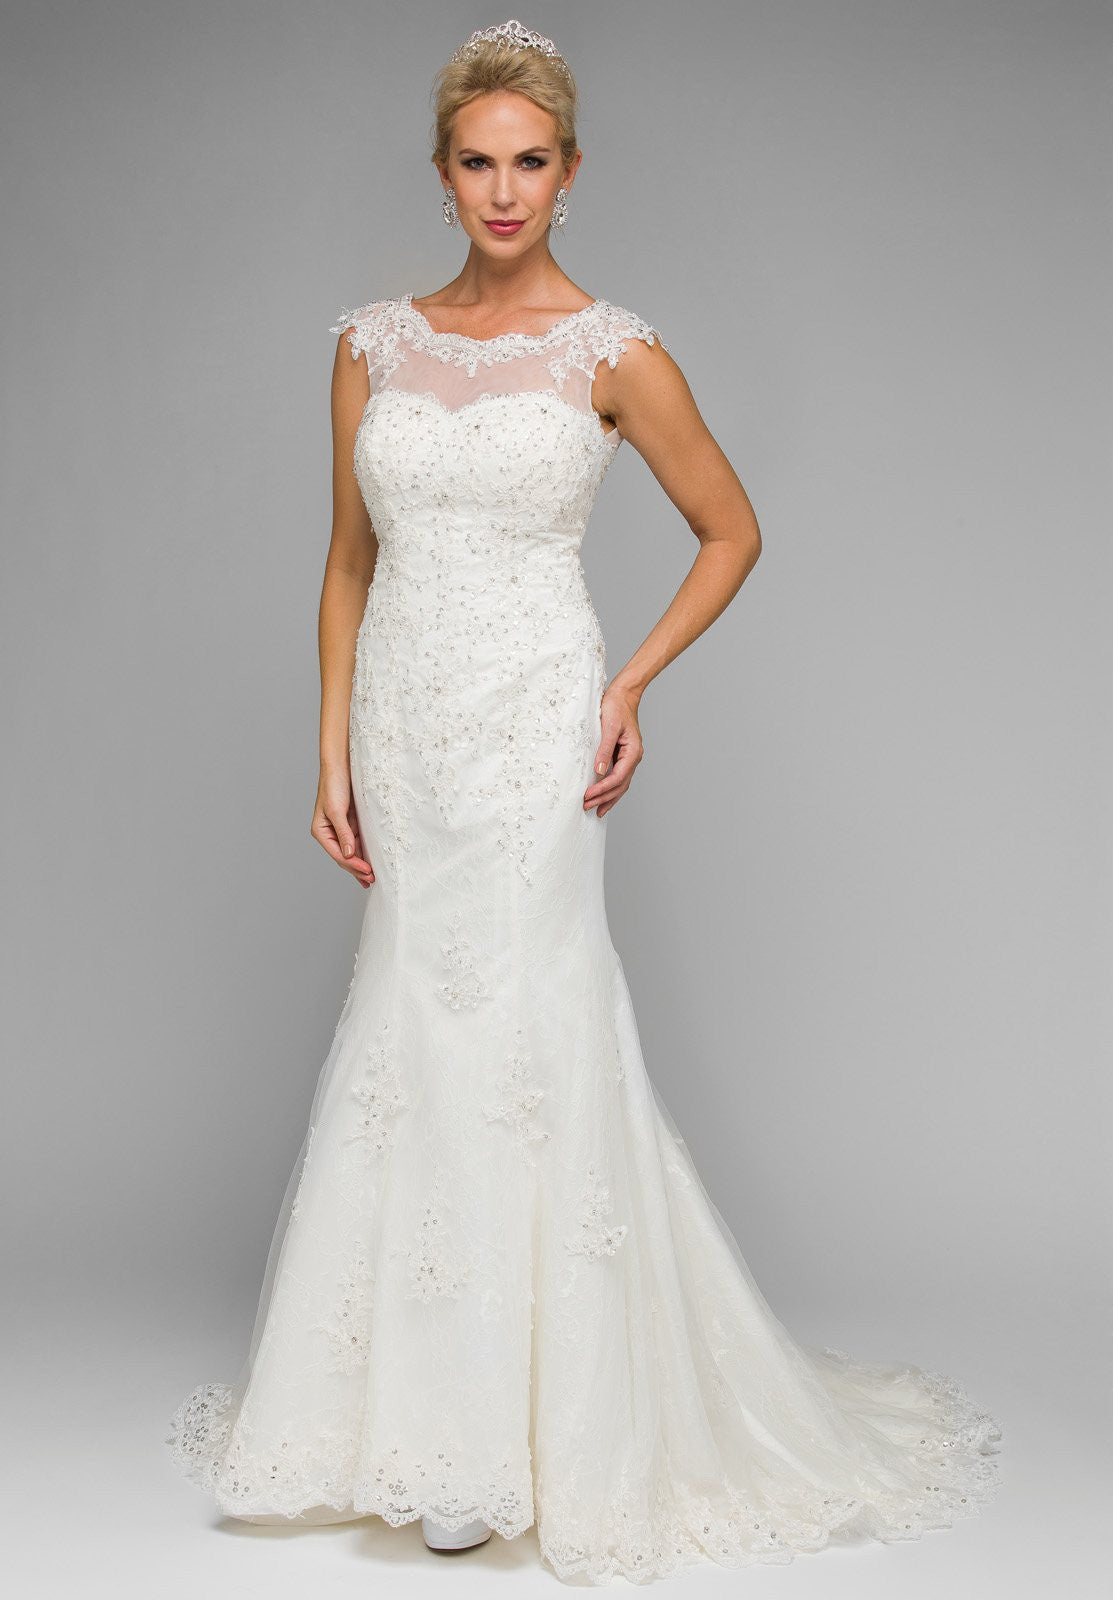 a2ca7d27a2 Juliet 343W Illusion Sweetheart Neckline Trumpet Style Wedding Gown White  ...